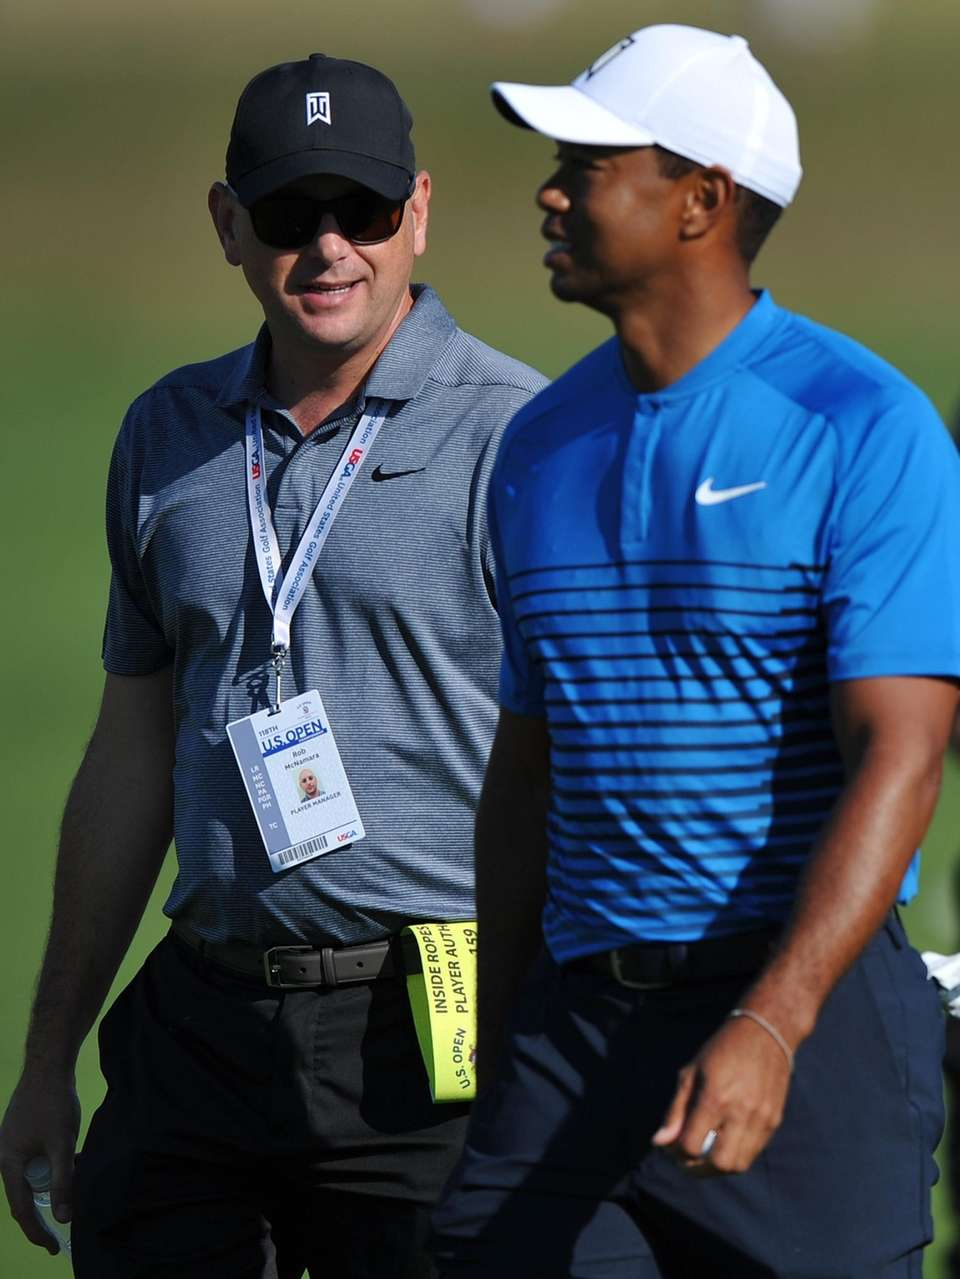 Rob McNamara, player manager, left, paces alongside Tiger